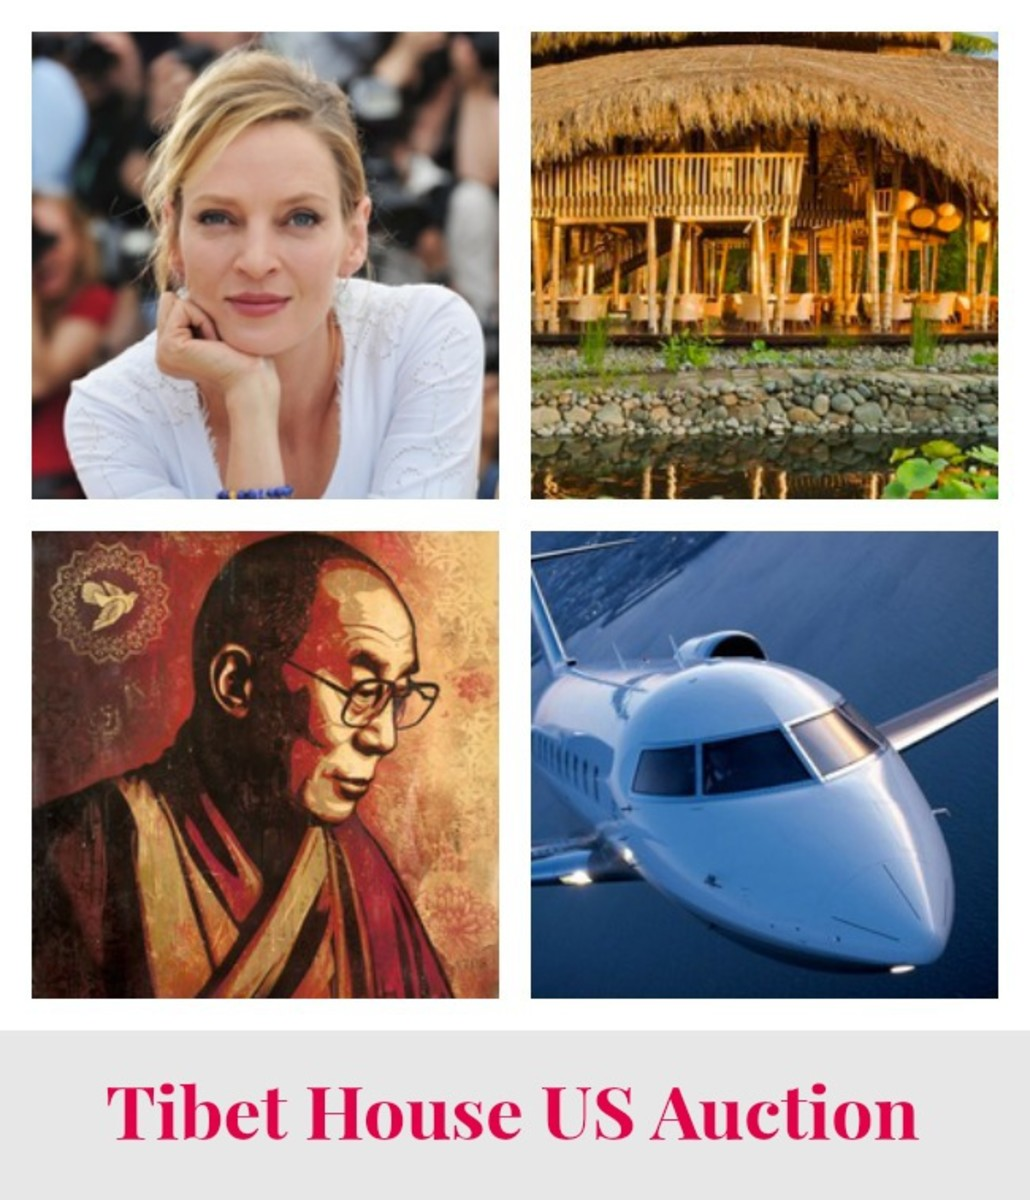 Tibet House US Auction